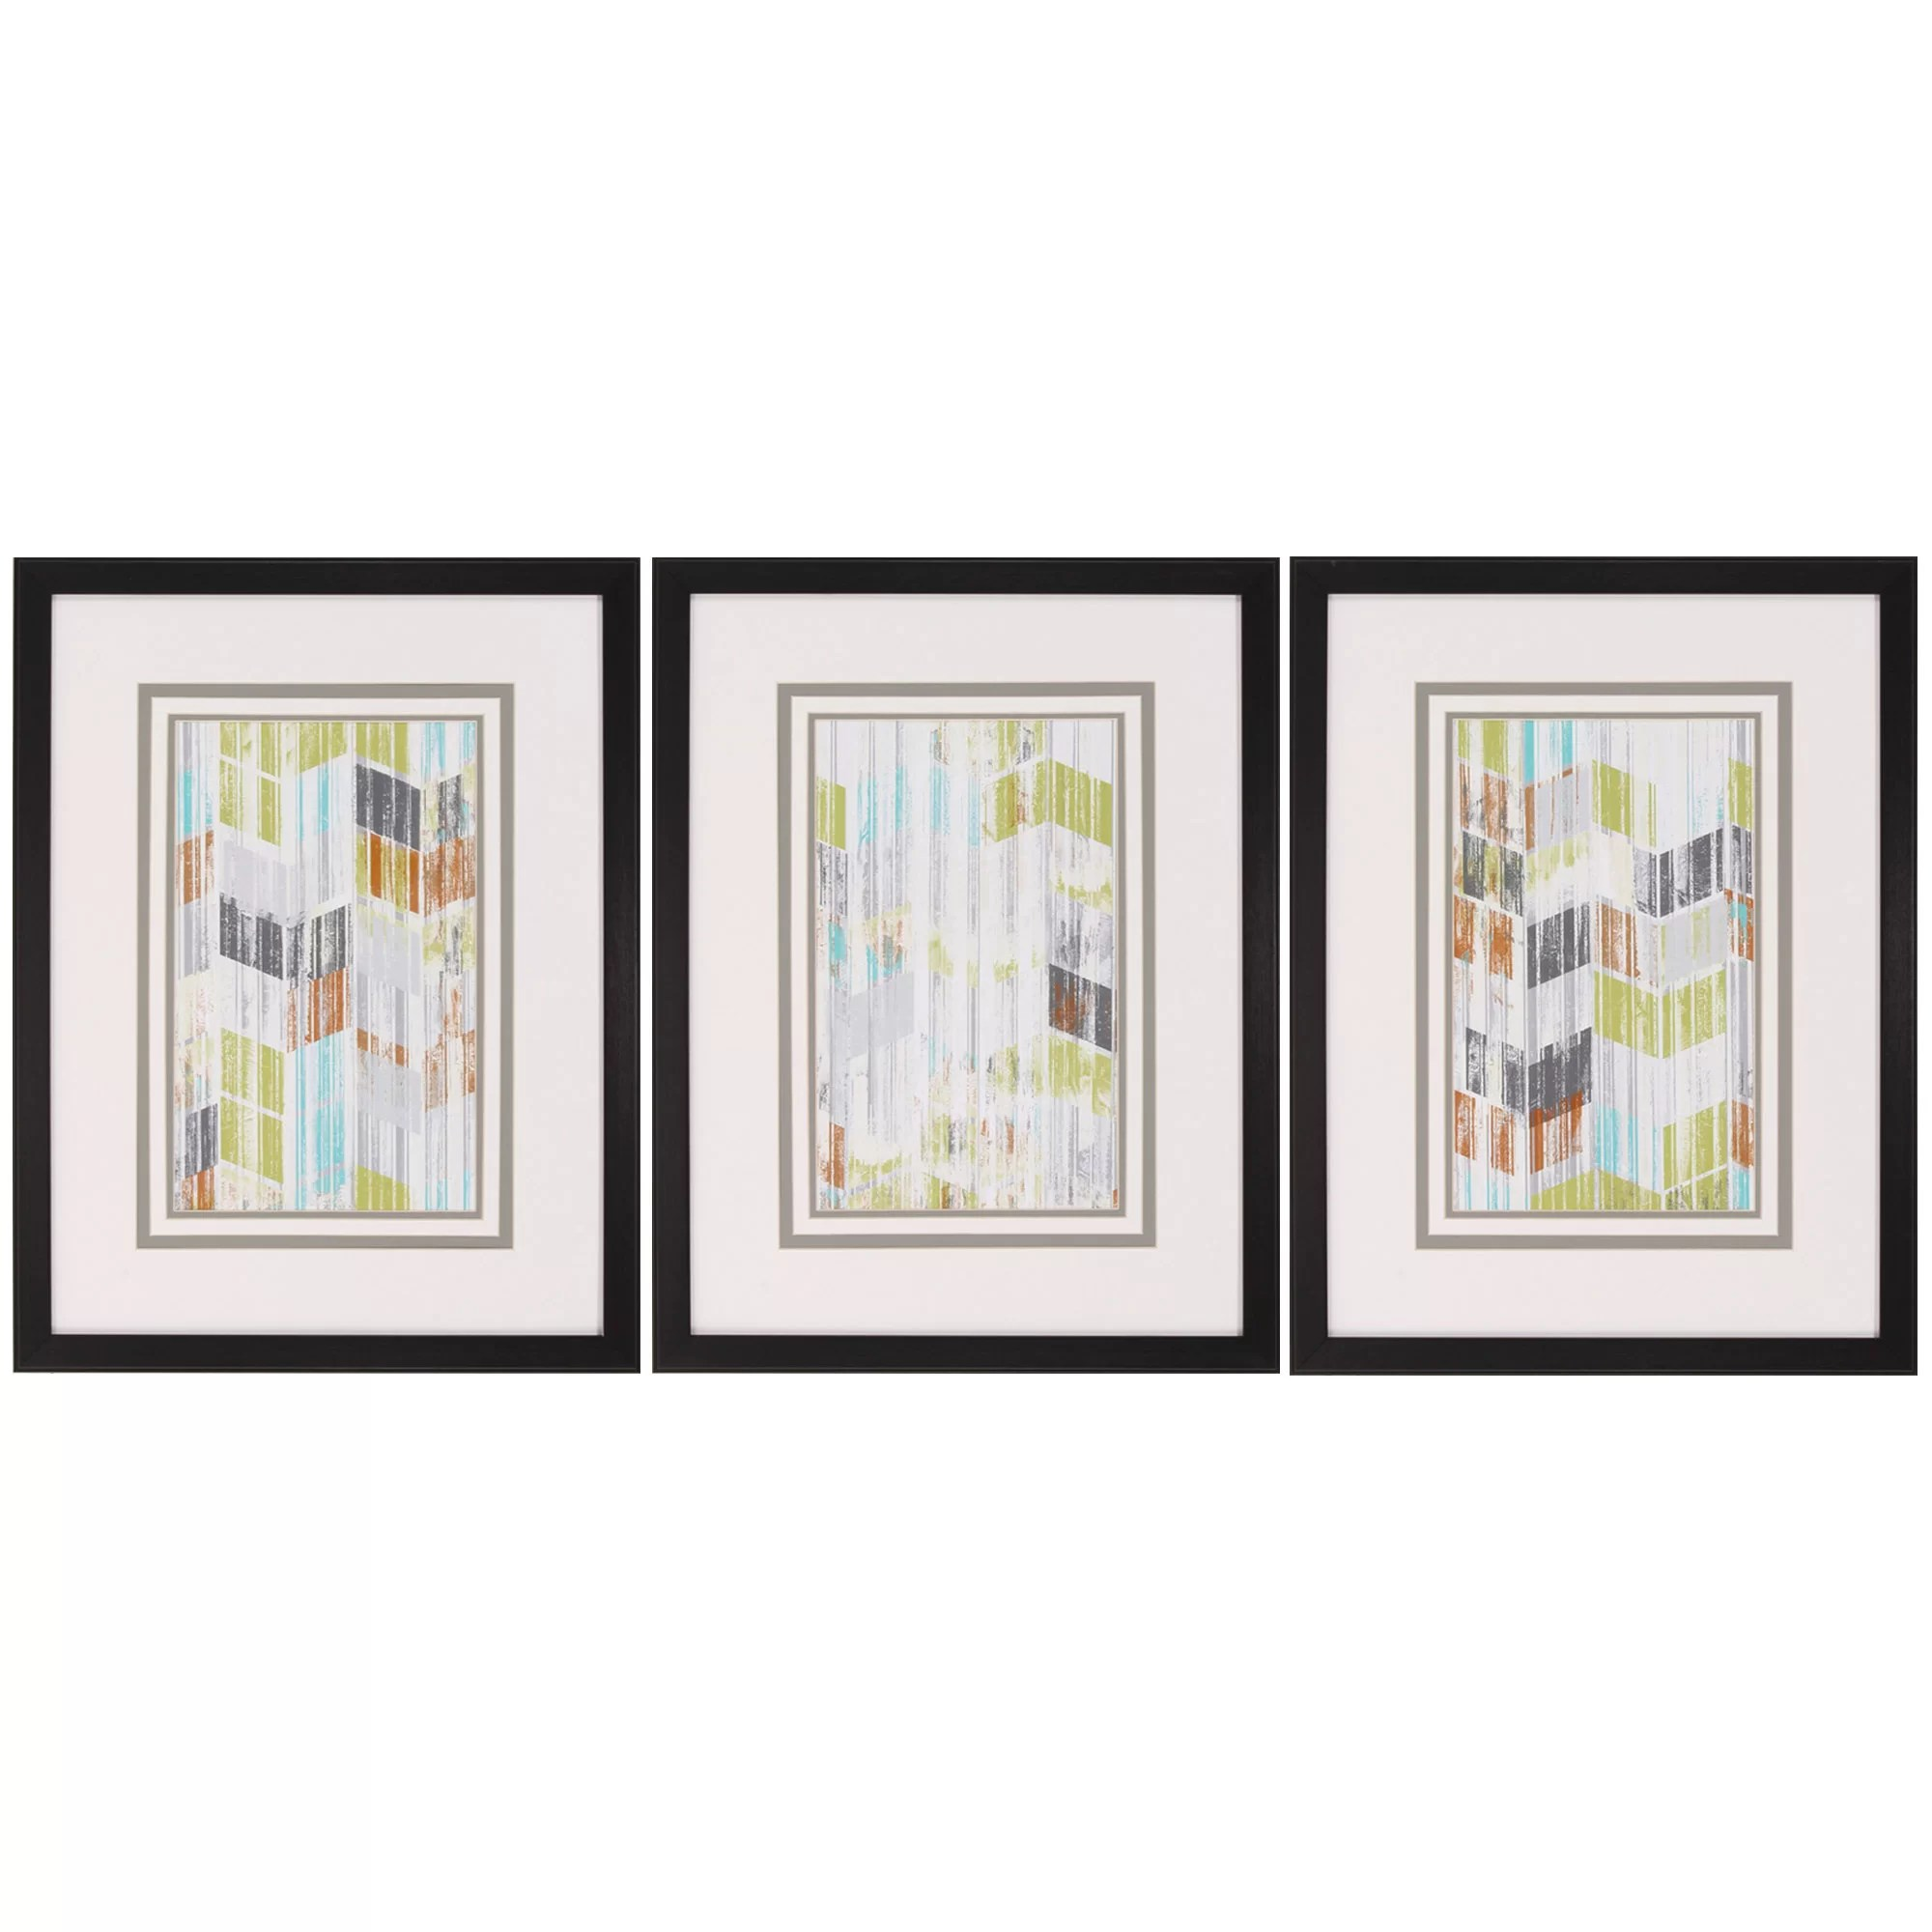 Framed Wall Art Sets Of 3 Propac Images Brushed Chevron I 3 Piece Framed Graphic Art